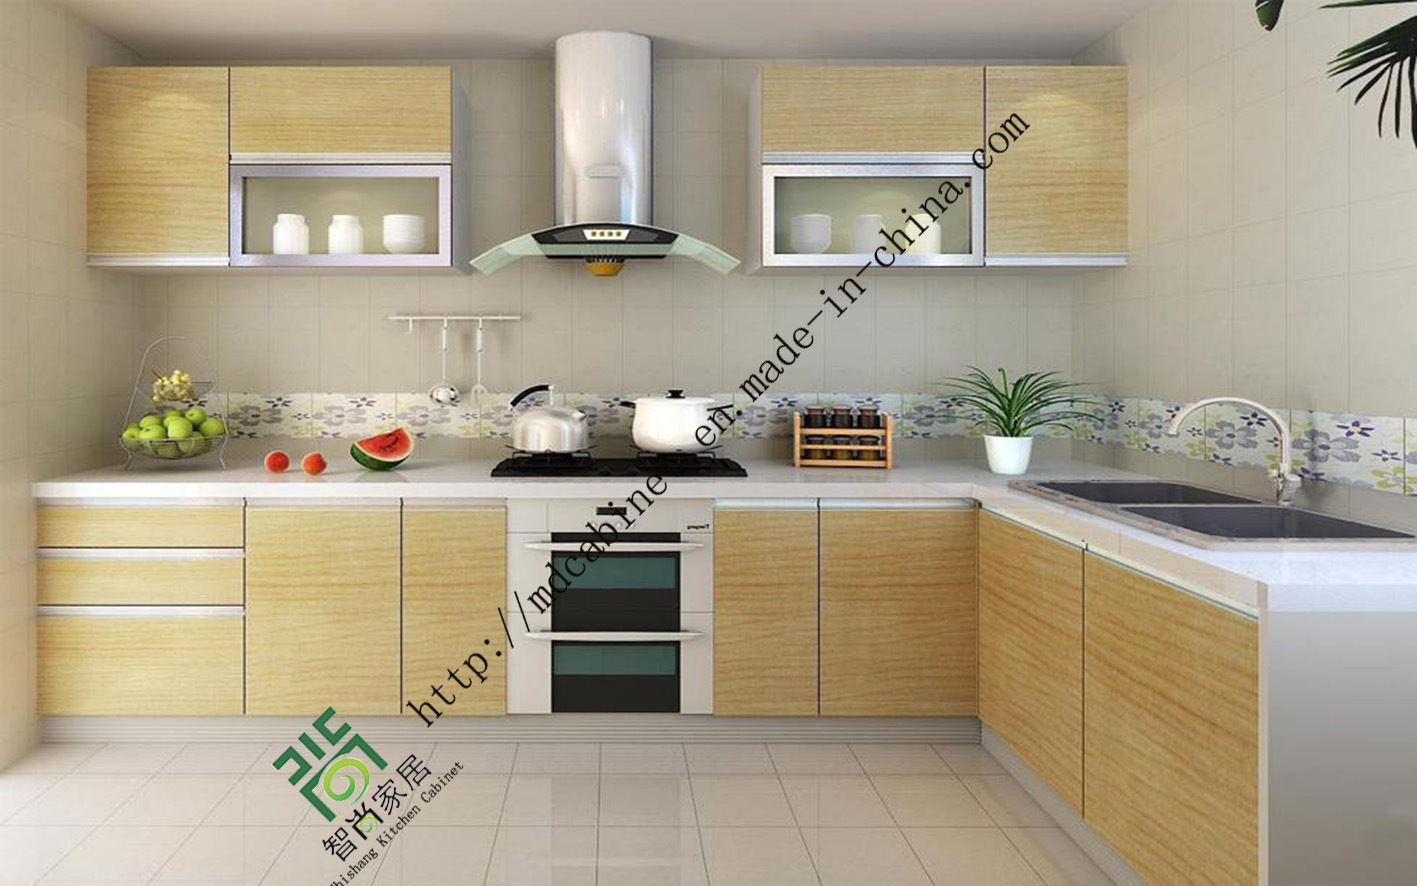 Foto de gabinete de cocina ultravioleta del nuevo dise o for Latest kitchen designs 2016